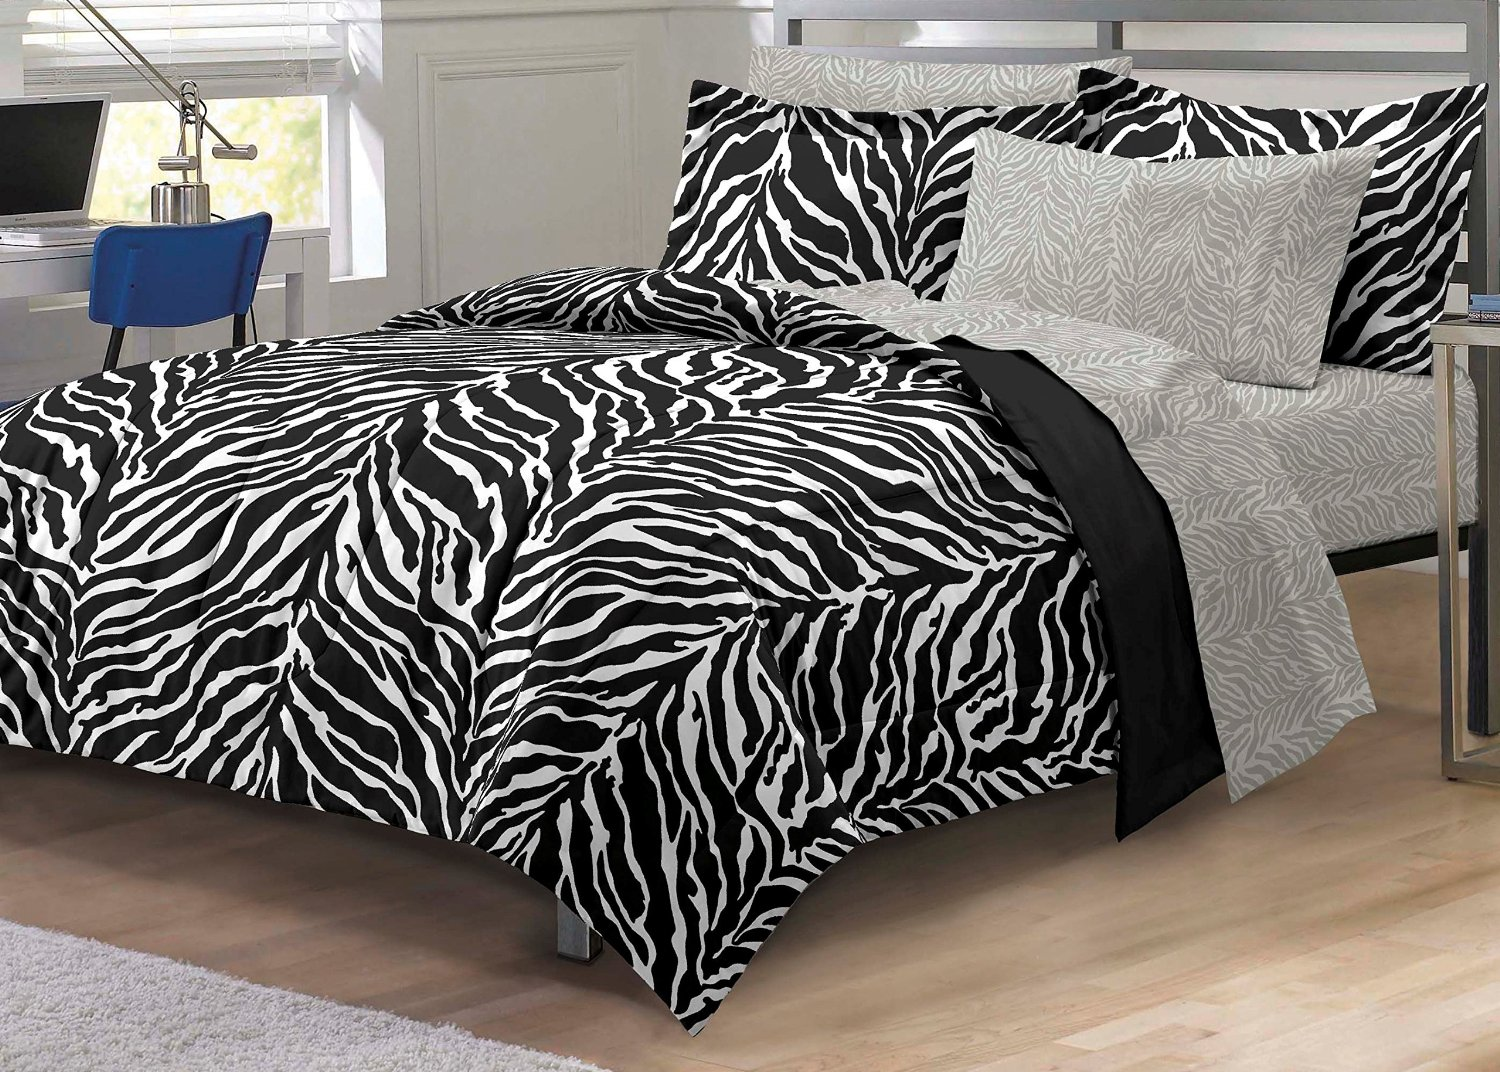 funky comforters bedding bedroom ideas for tween teen girls. Black Bedroom Furniture Sets. Home Design Ideas